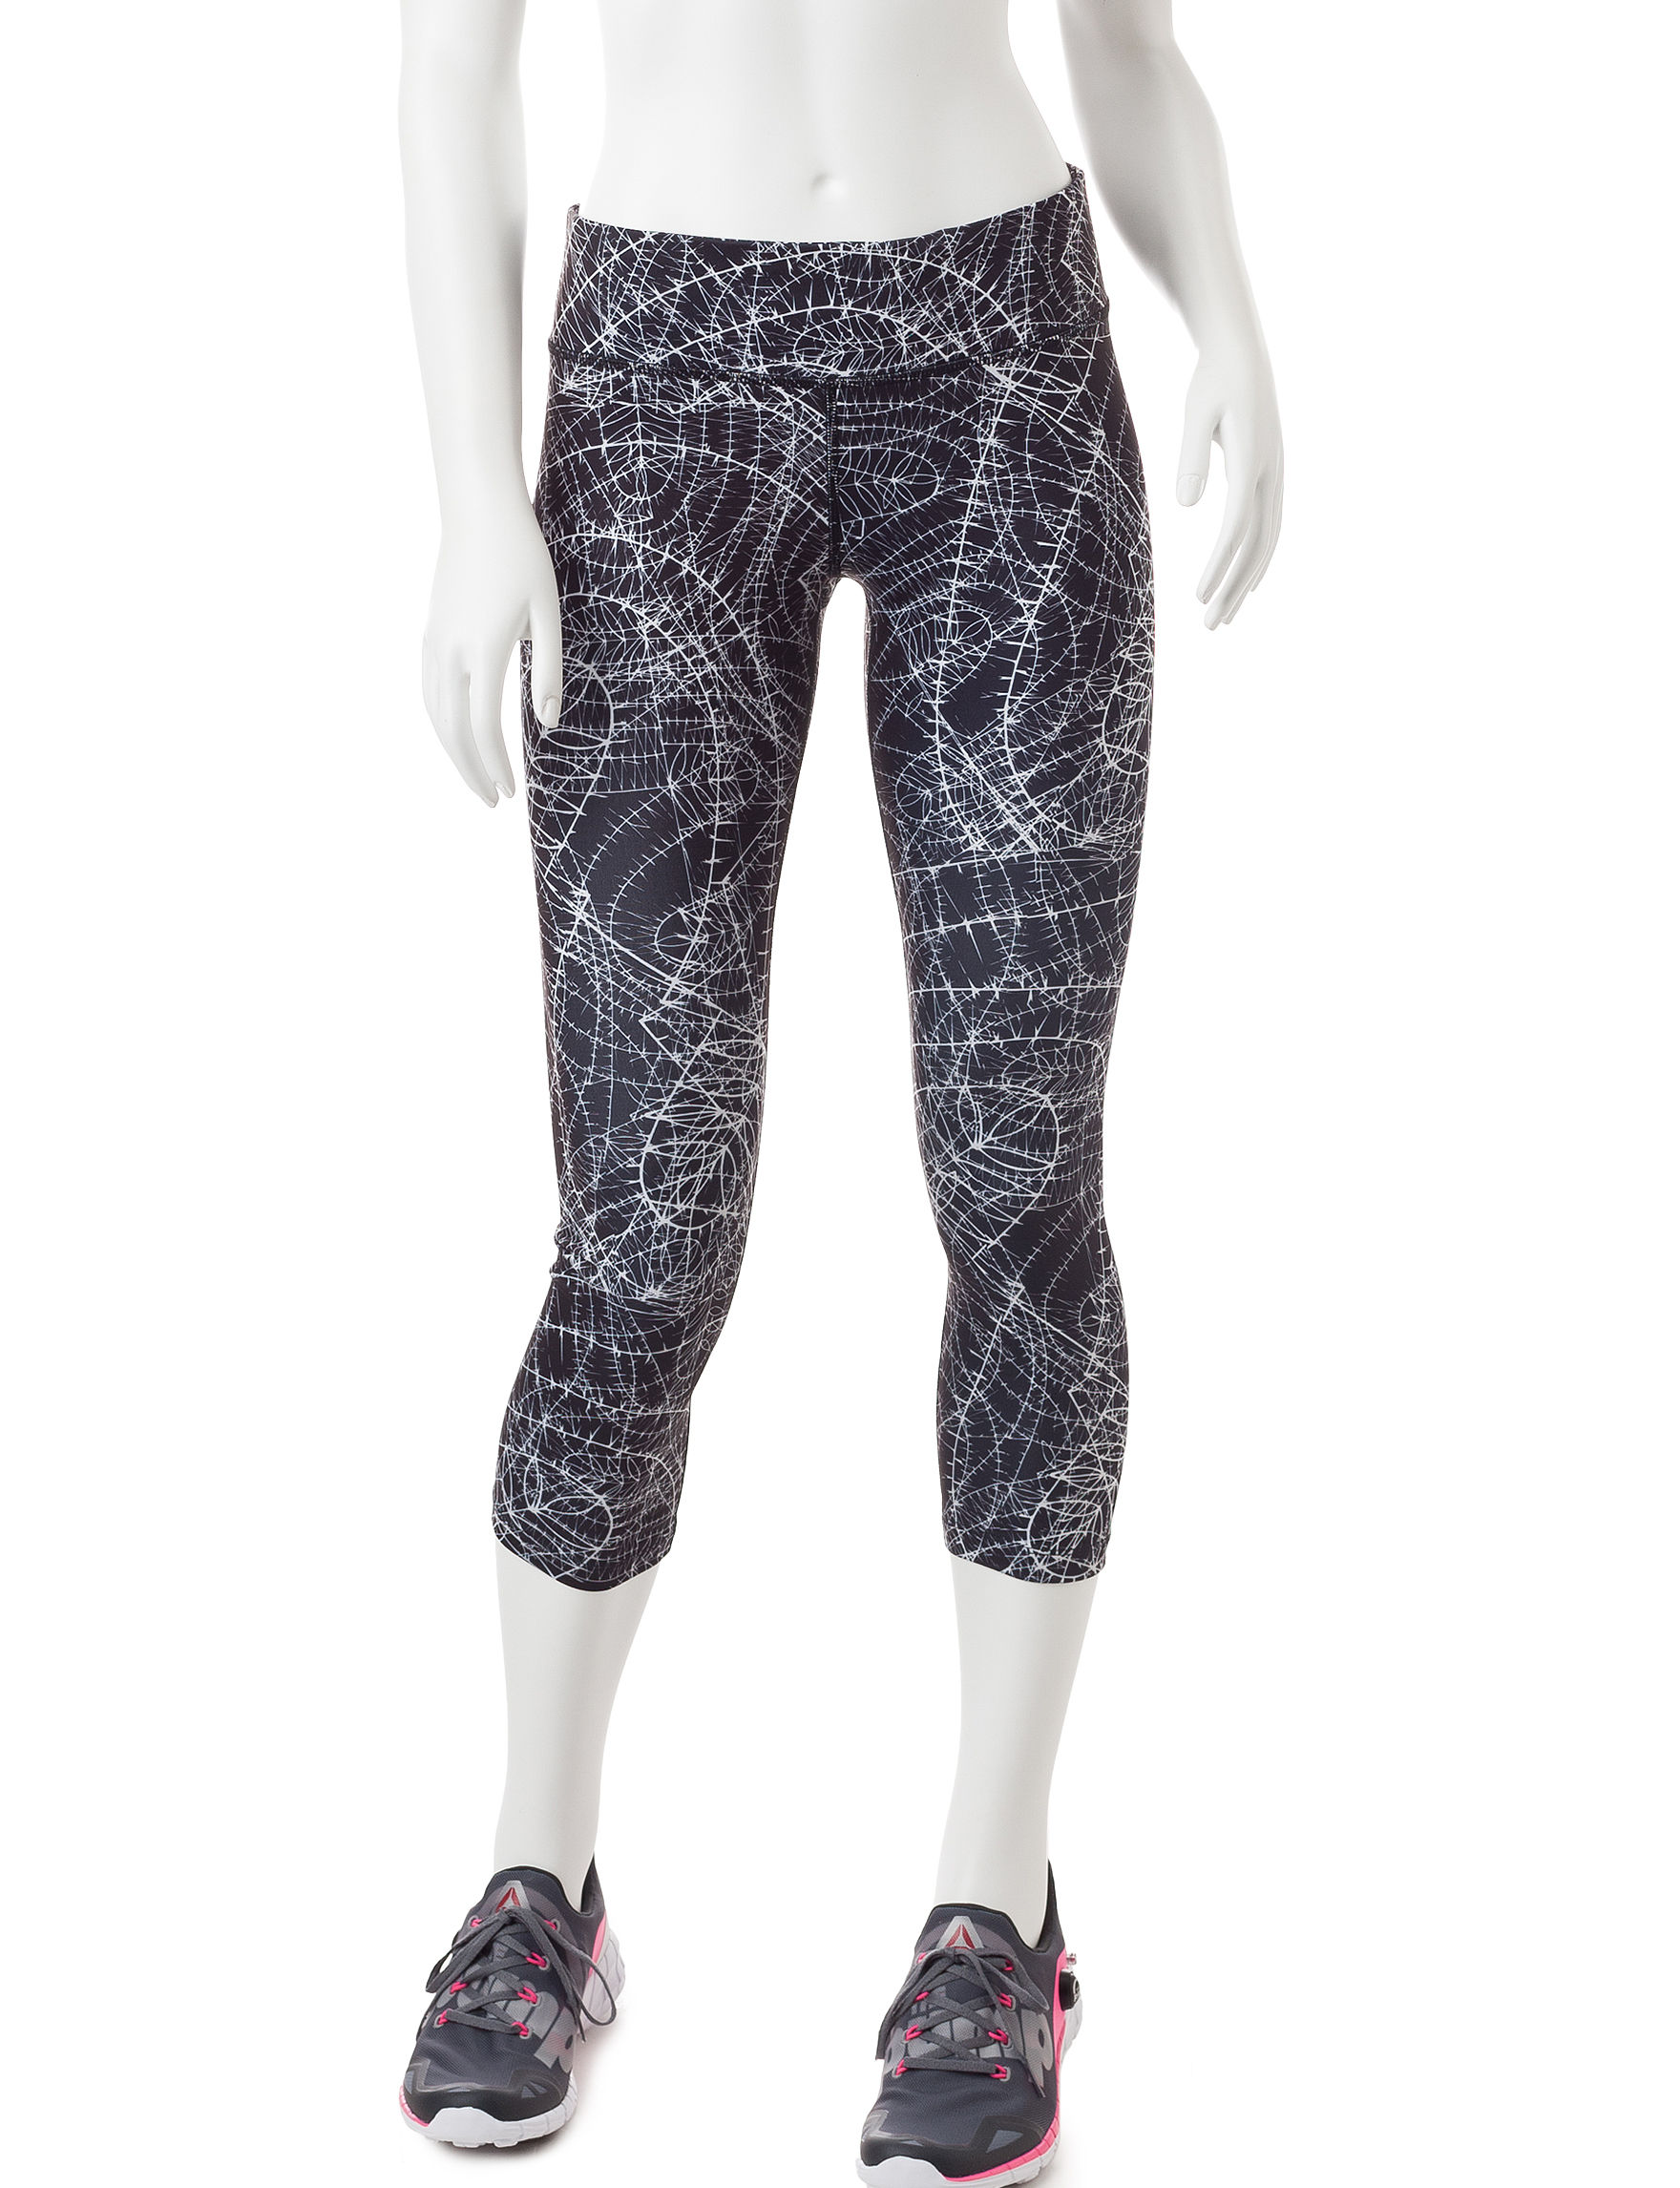 Steve Madden Black / White Leggings